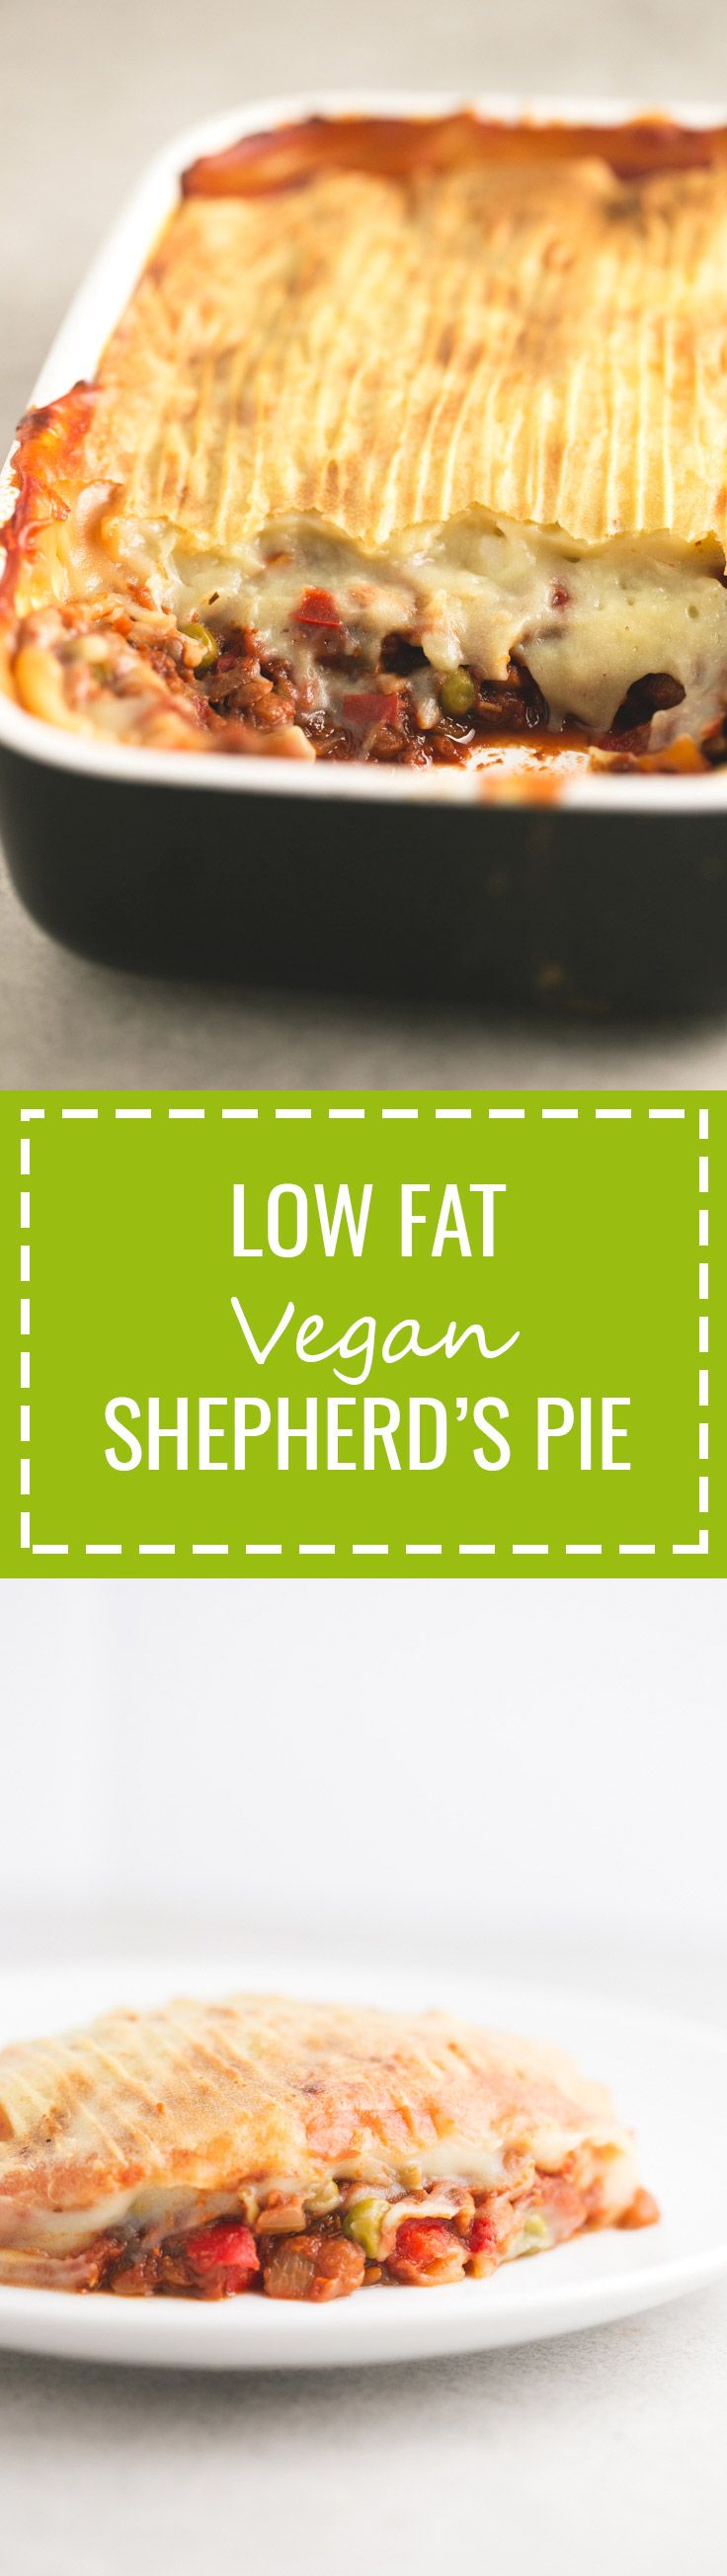 Low Fat Vegan Shepherd's Pie